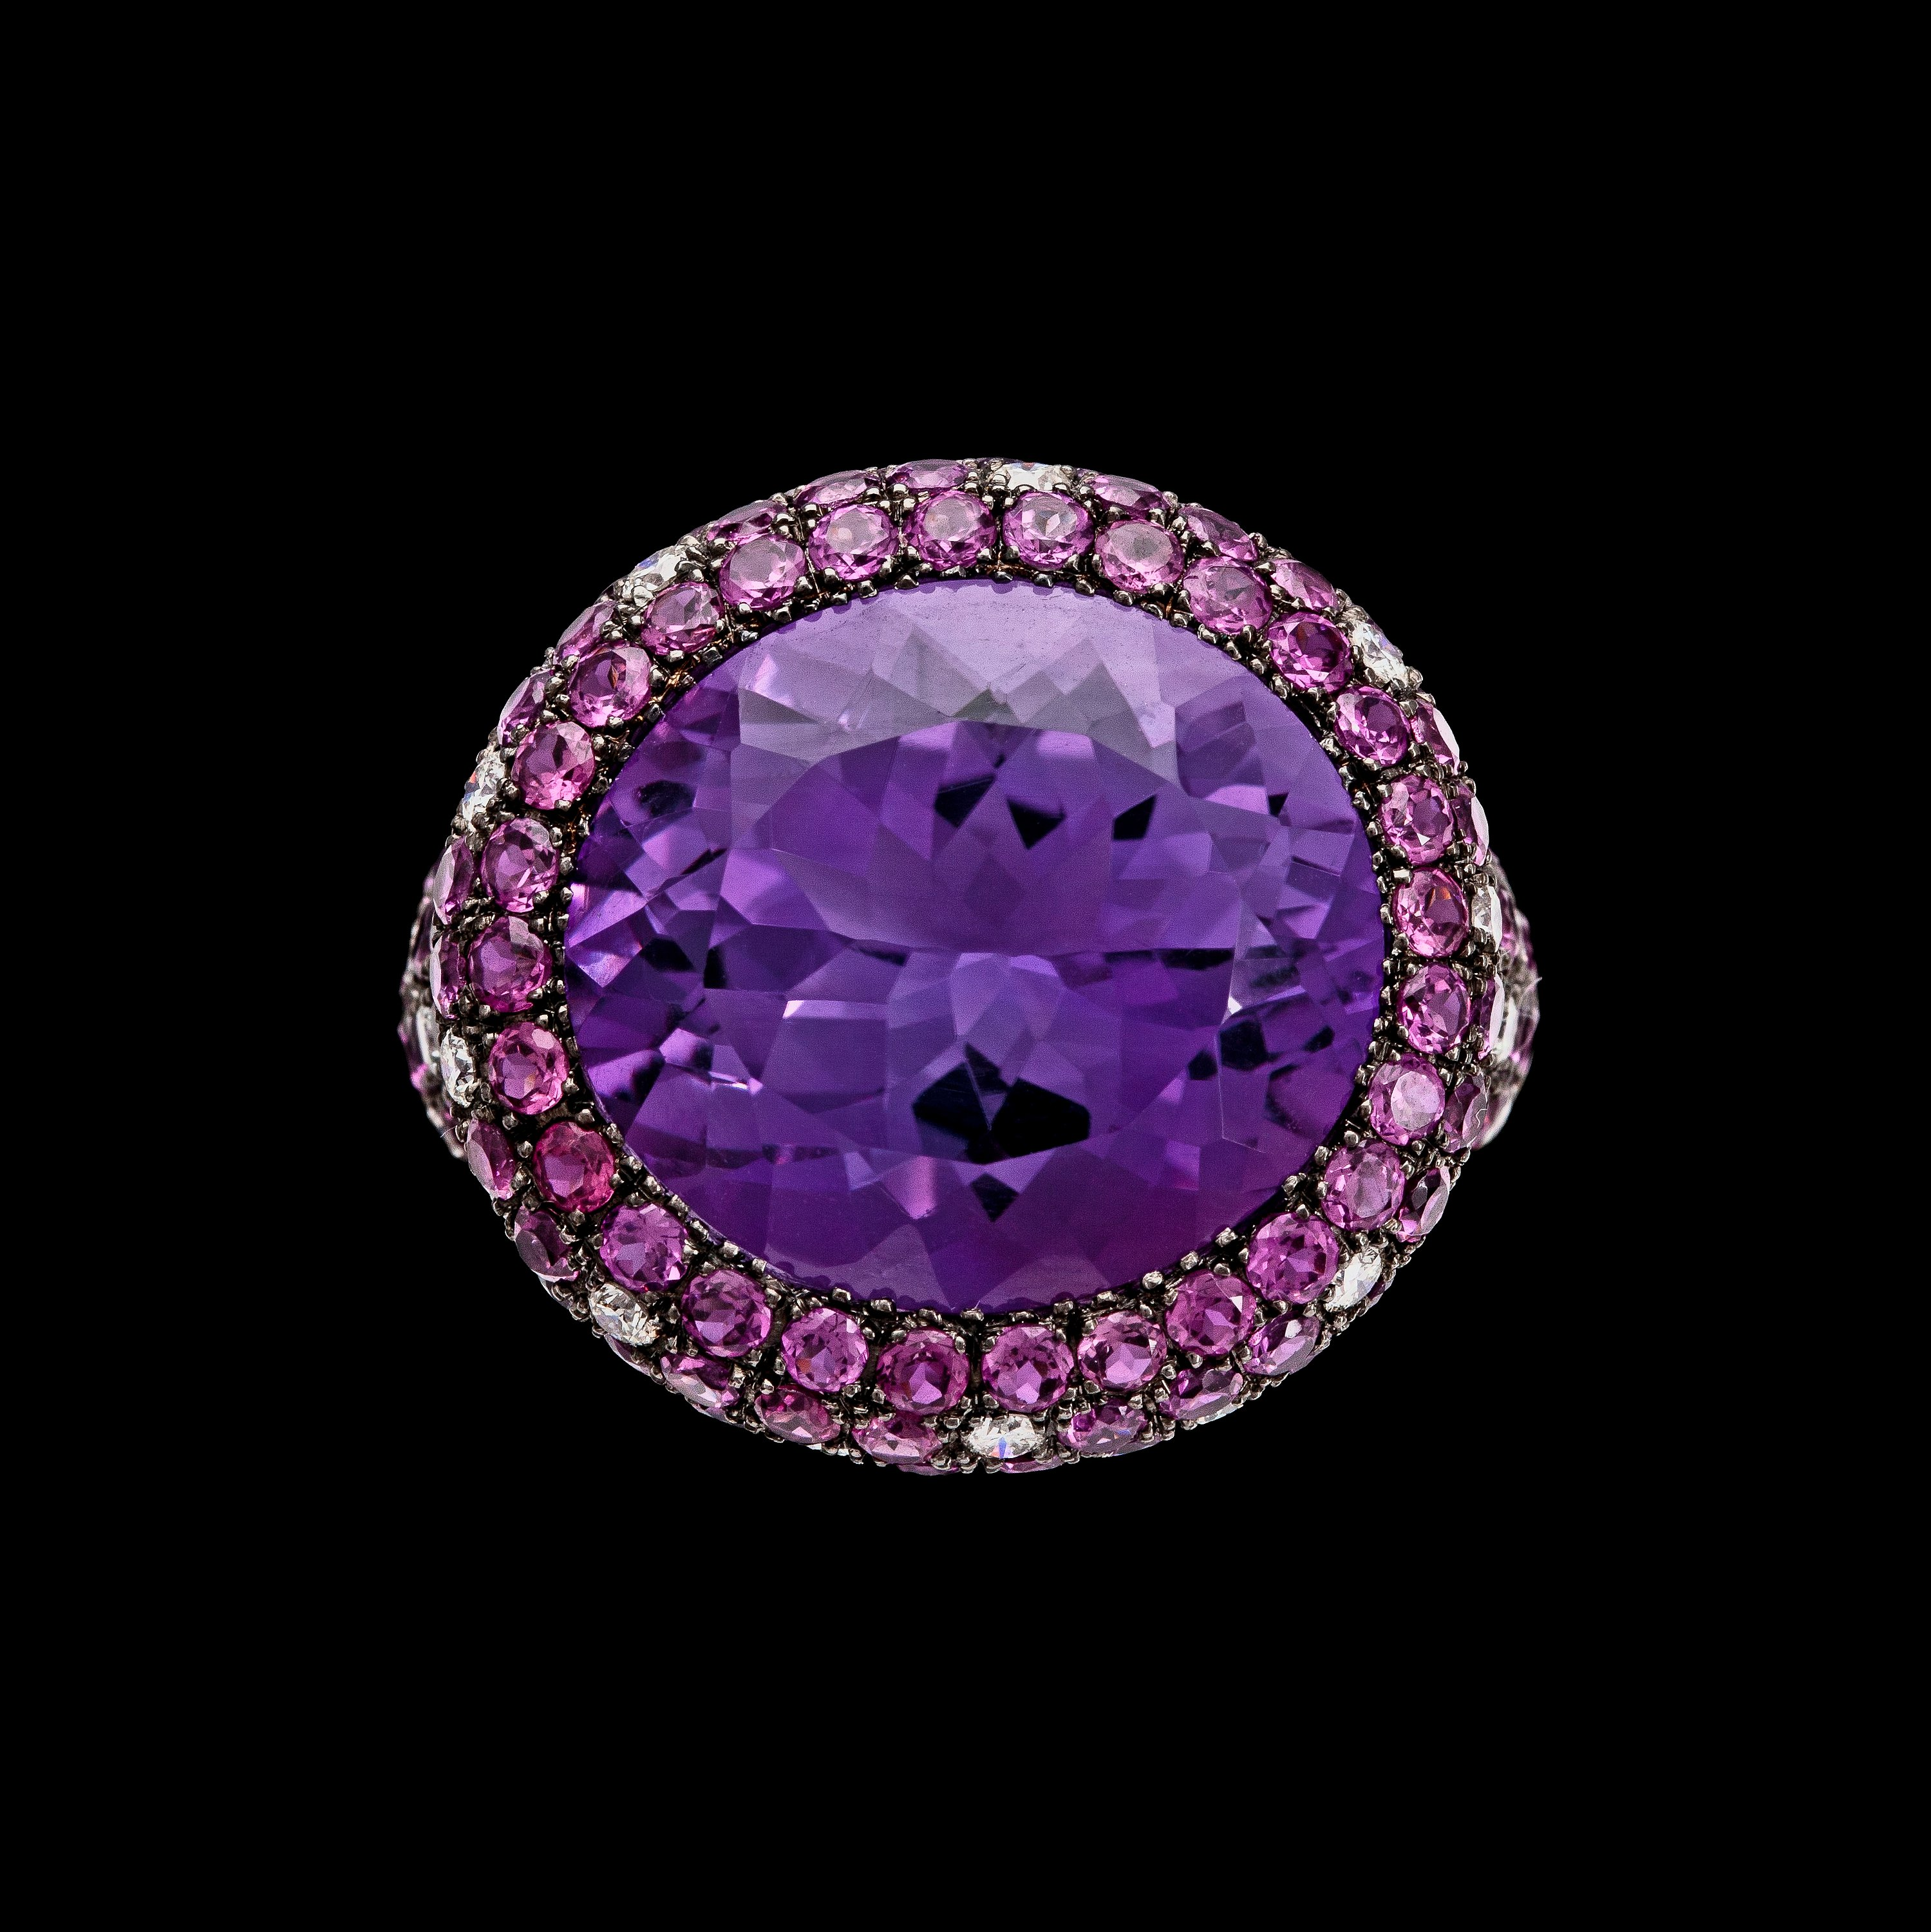 An amethyst, app 5 20 cts, pink sapphire and diamond ring